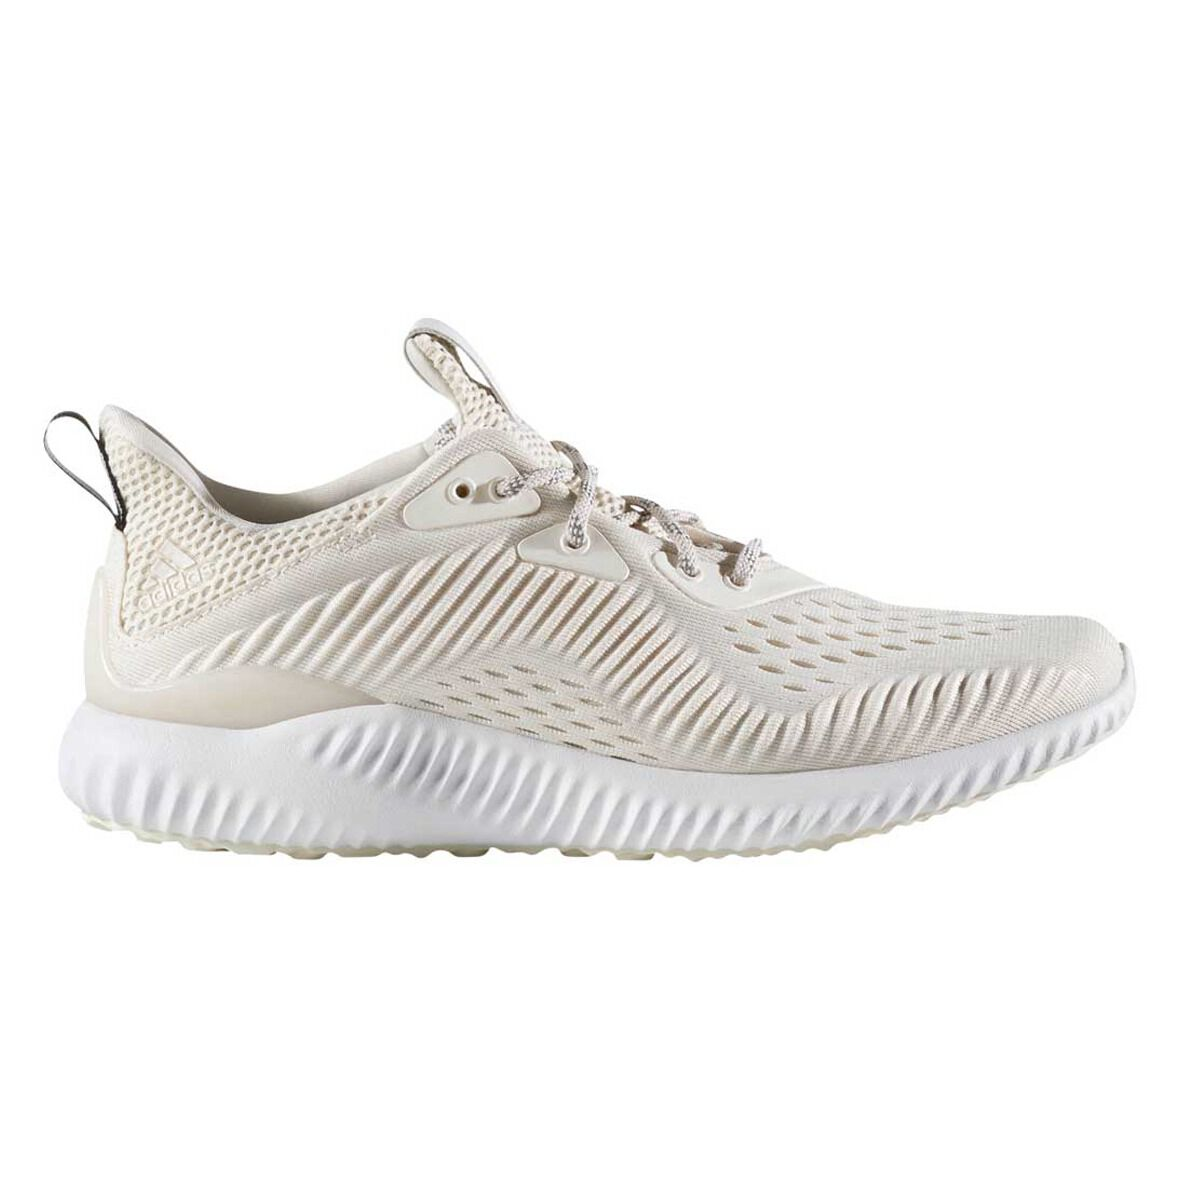 buy popular 8e074 623b3 ... discount adidas alphabounce engineered mesh womens running shoes white  us 6 white rebelhi res 4b2b7 49ddb